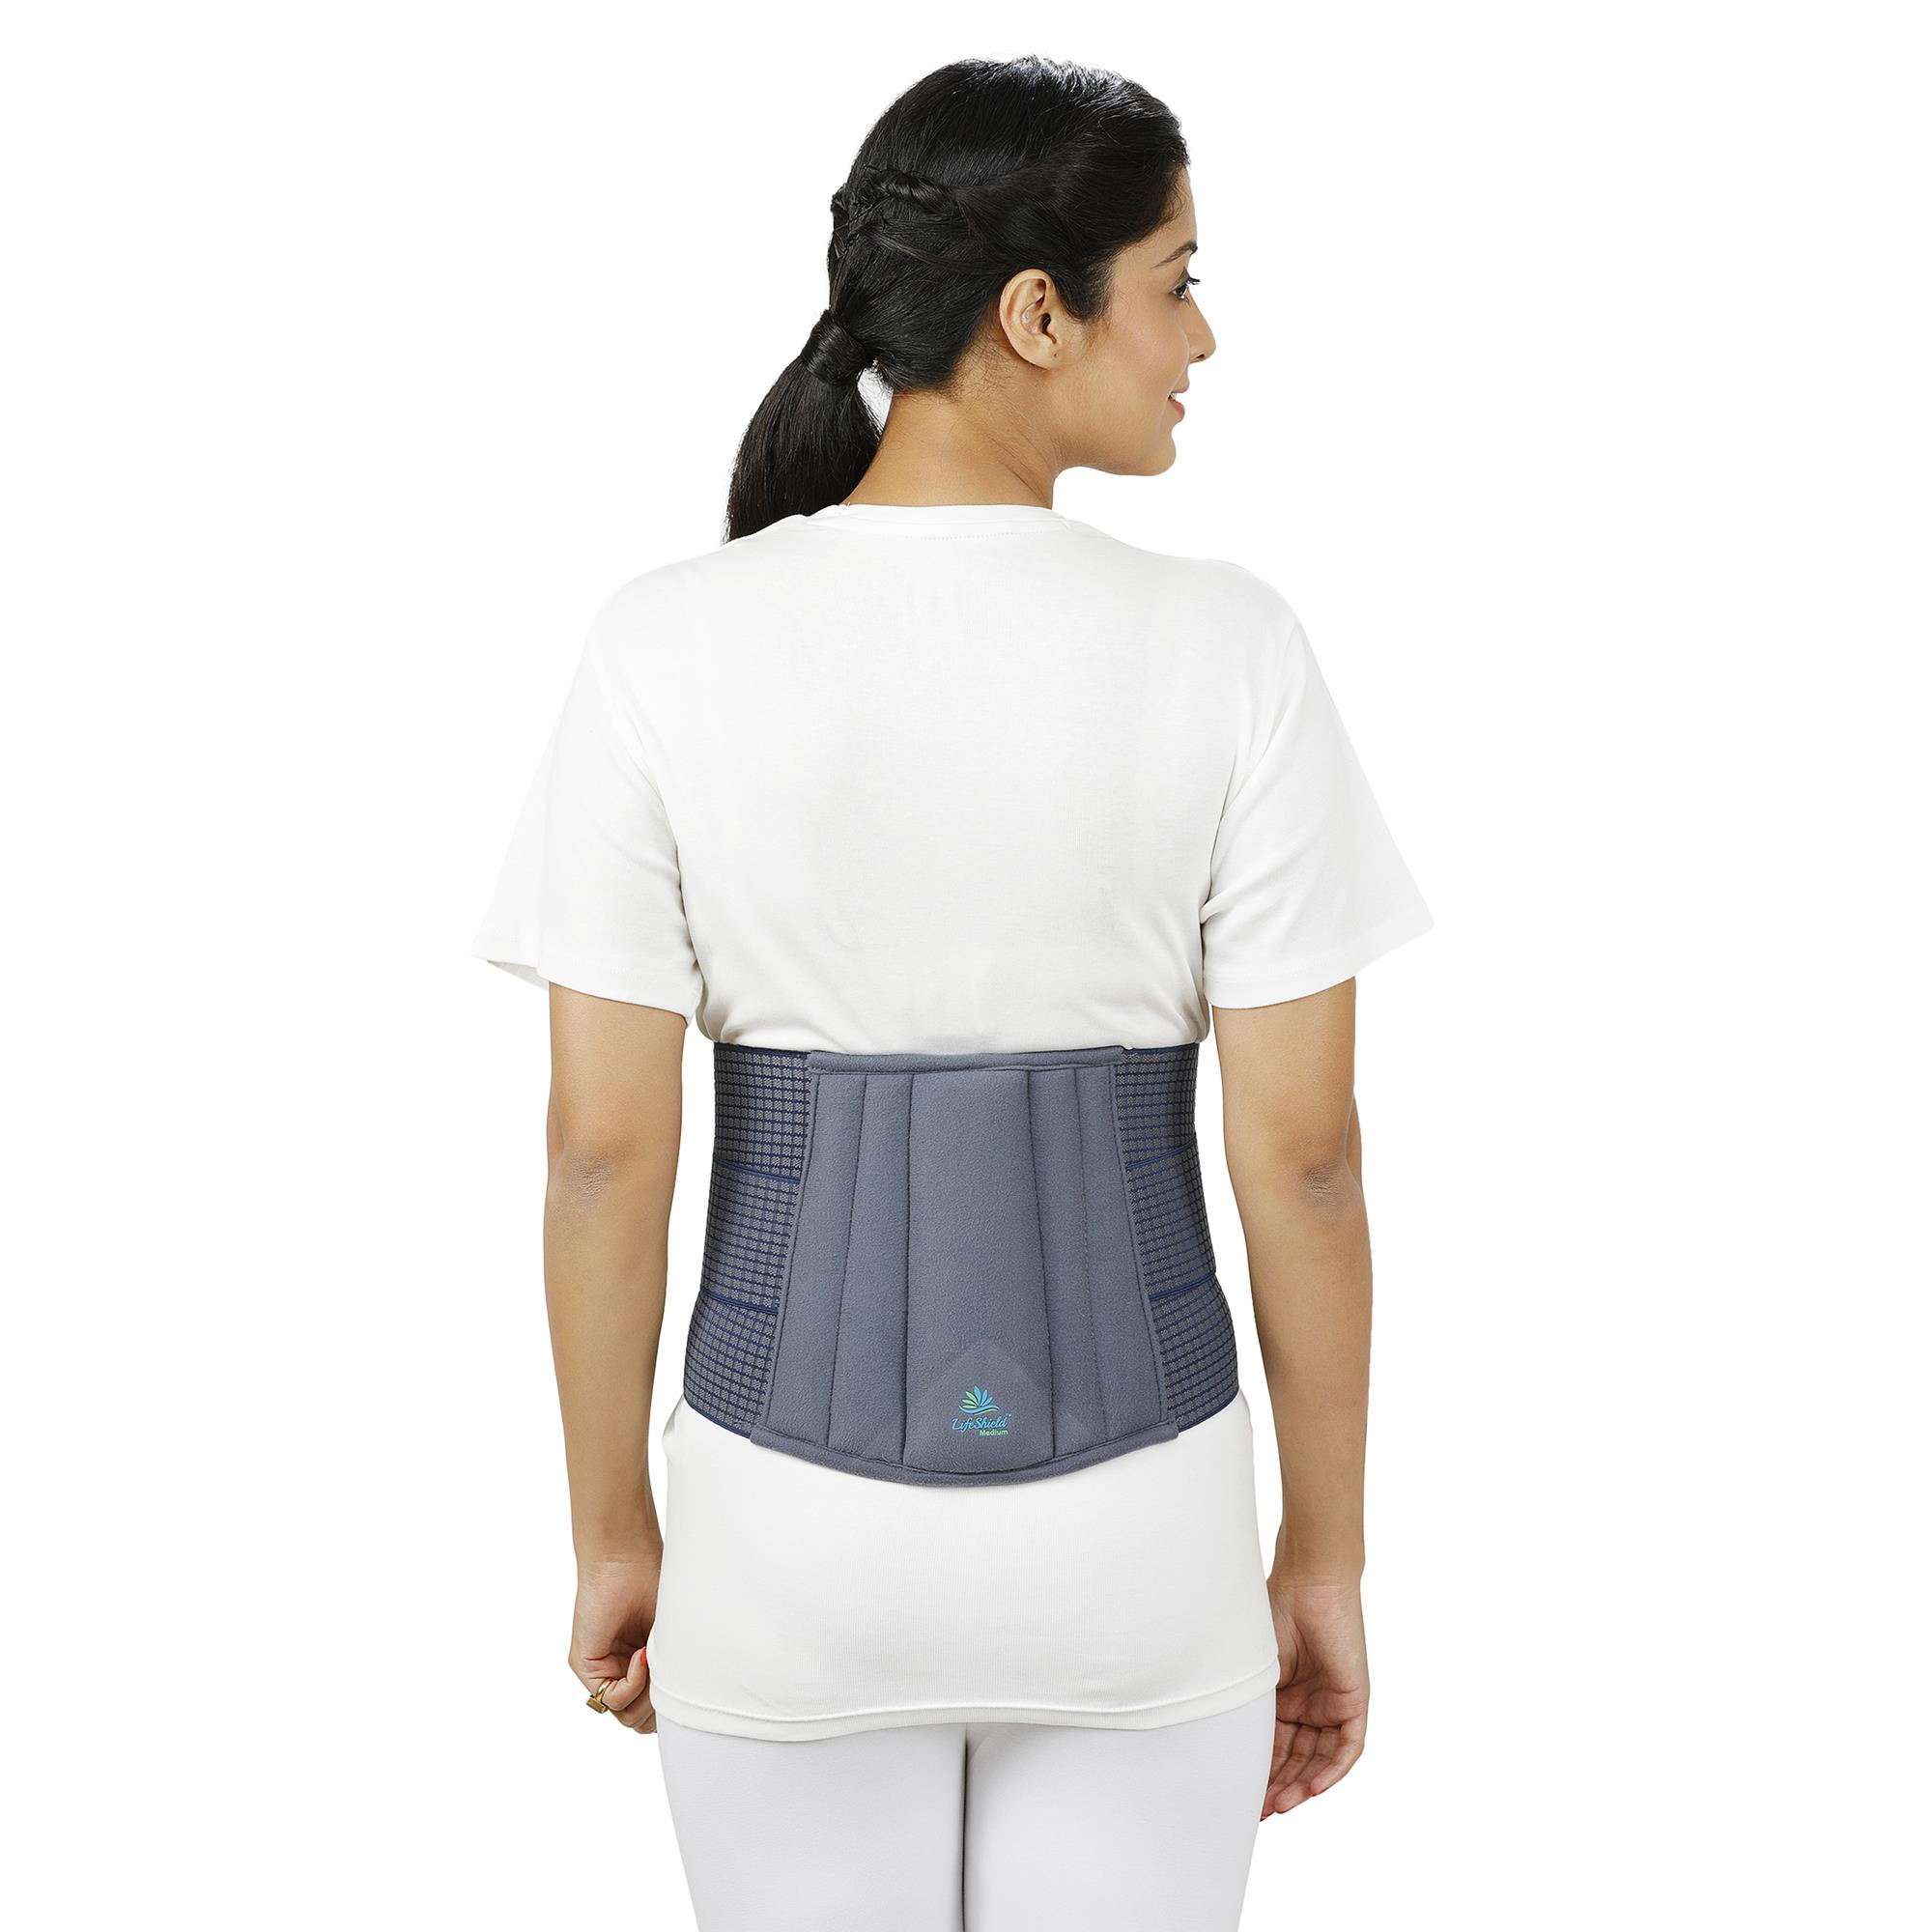 Lifeshield Lumbo Sacral Support With Soft Padded Foam: Provides Back Support To Lumber Region (X Large)